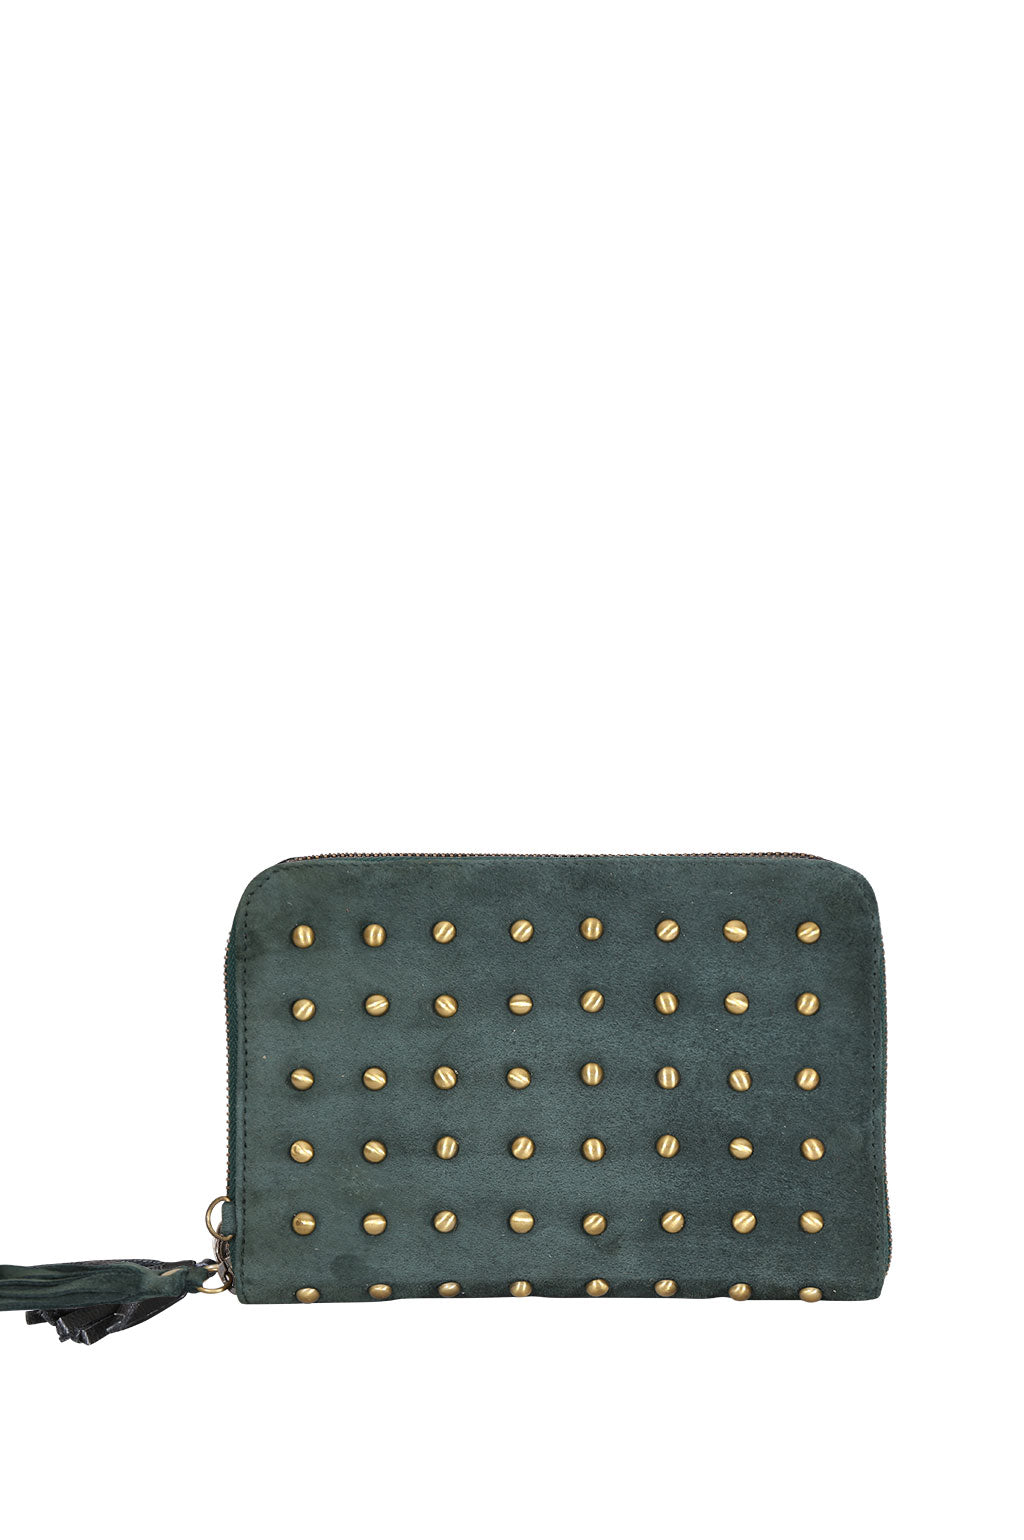 Belle Suede Studded Emerald Green